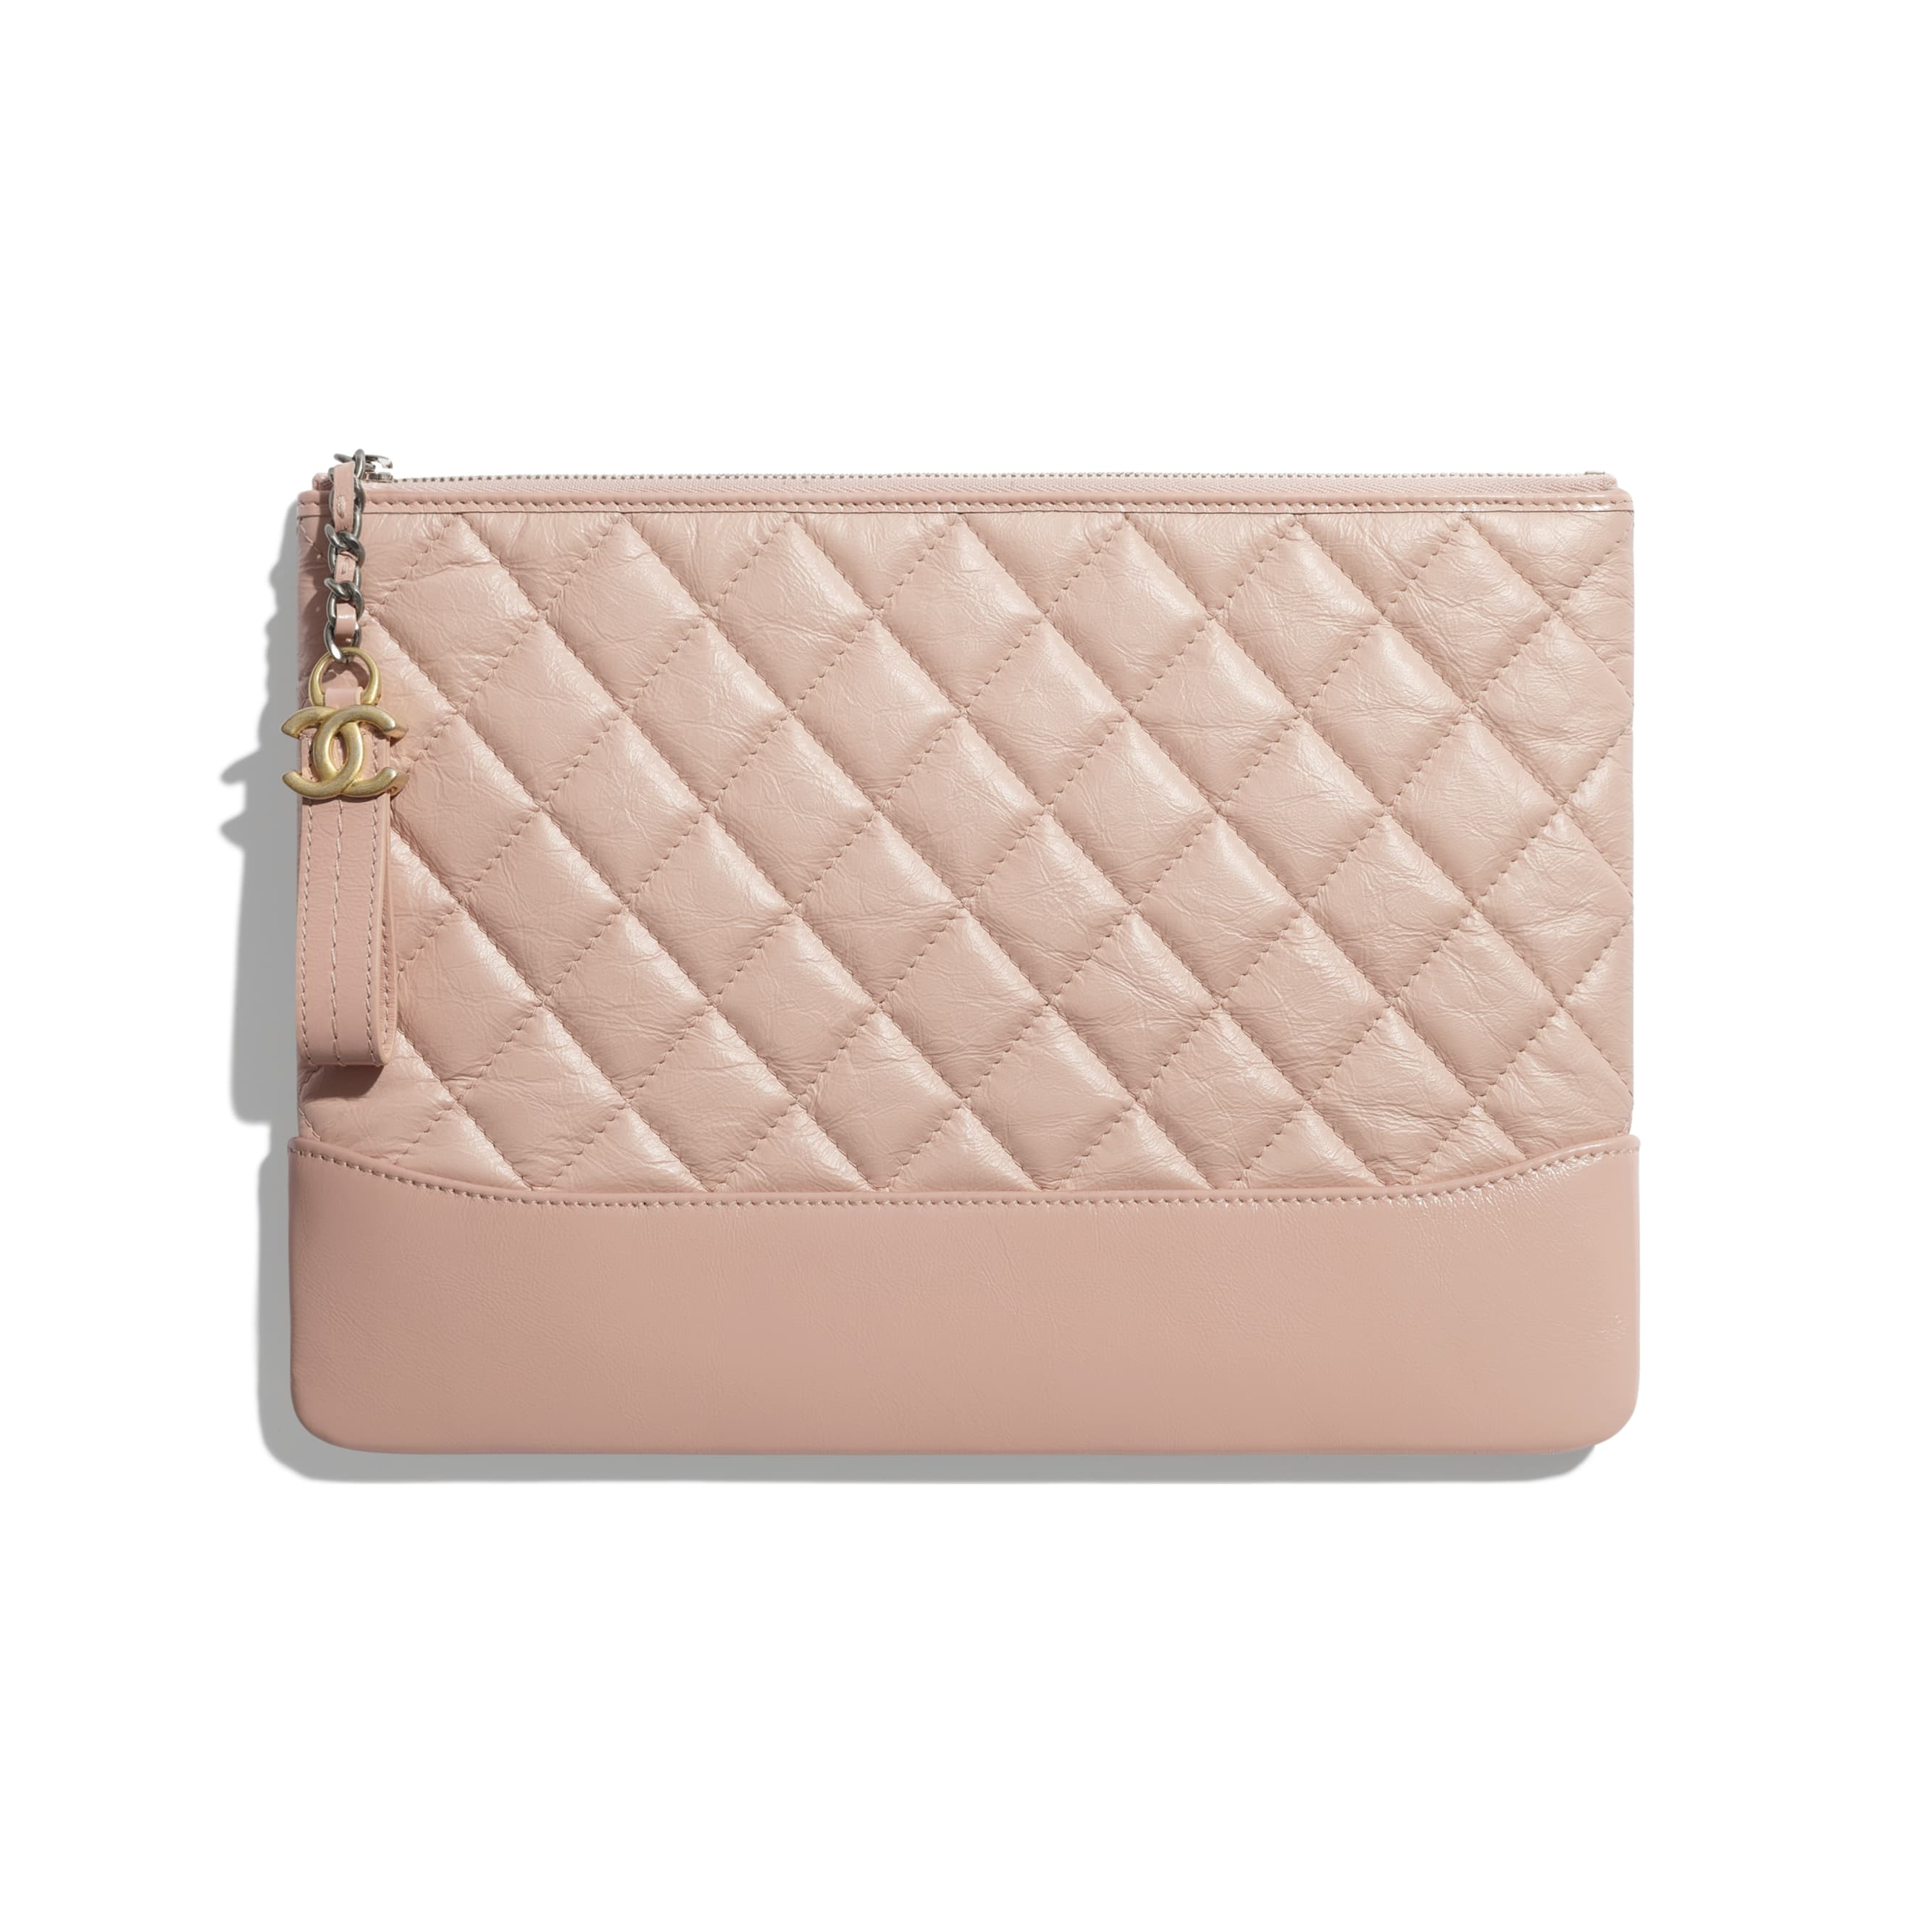 Pouch - Light Pink - Aged Calfskin, Smooth Calfskin & Gold-Tone Metal - CHANEL - Default view - see standard sized version